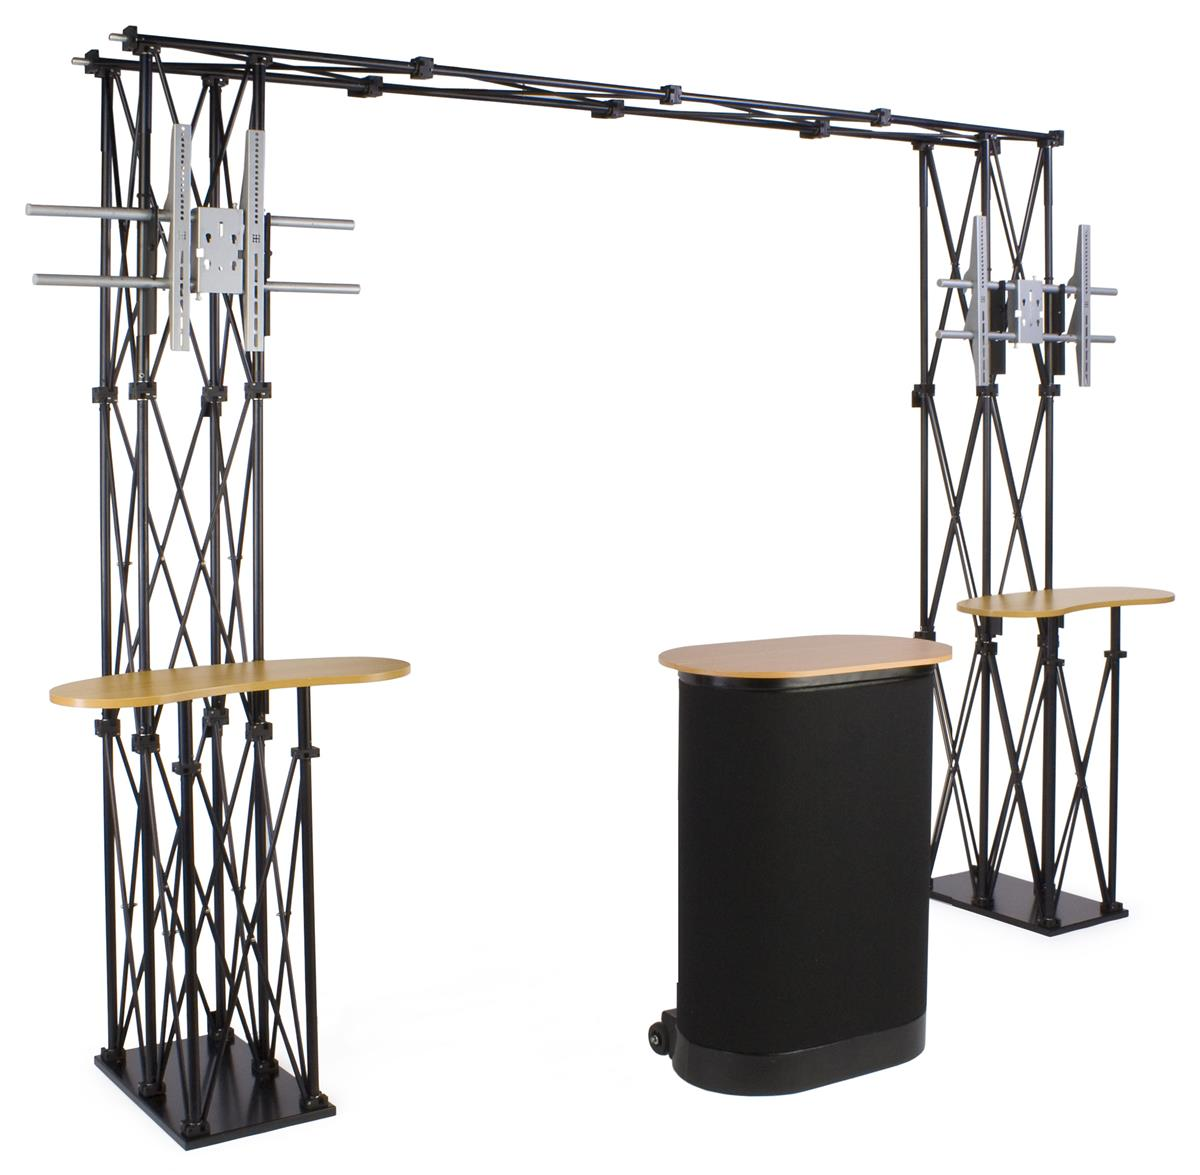 Displays2go Trade Show Truss Booth w/ Shelves, 2 Counters...